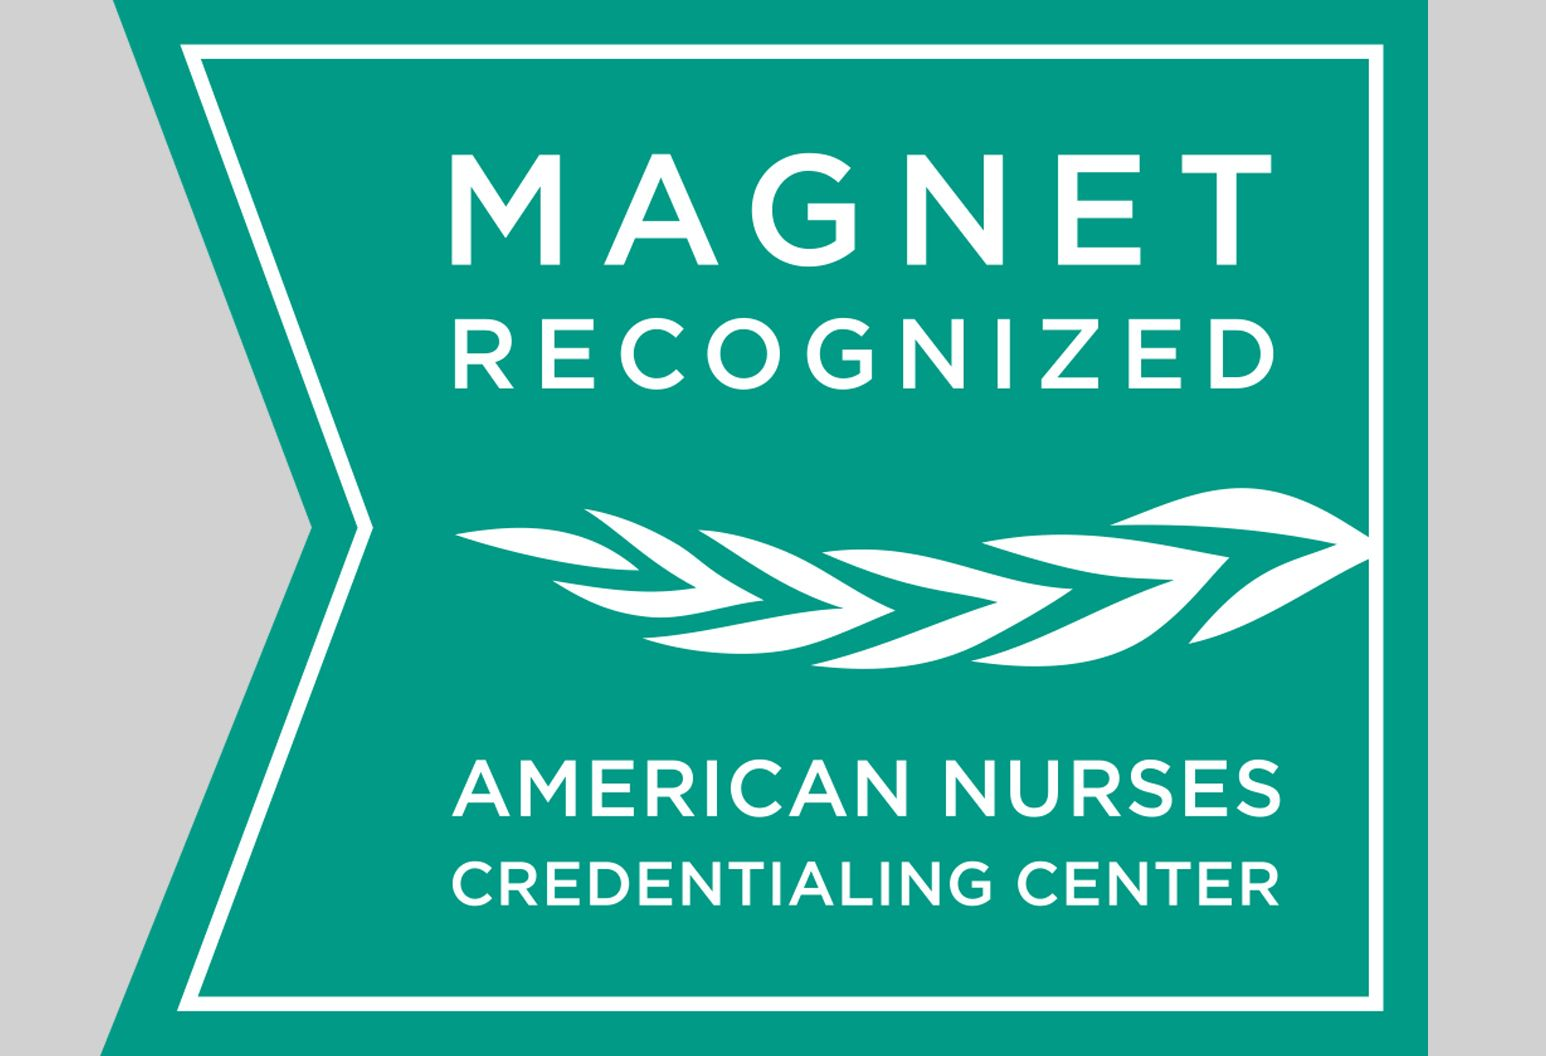 Magnet status logo teal with white writing. Reads: magnet recognized.  American nurses credentialing center.